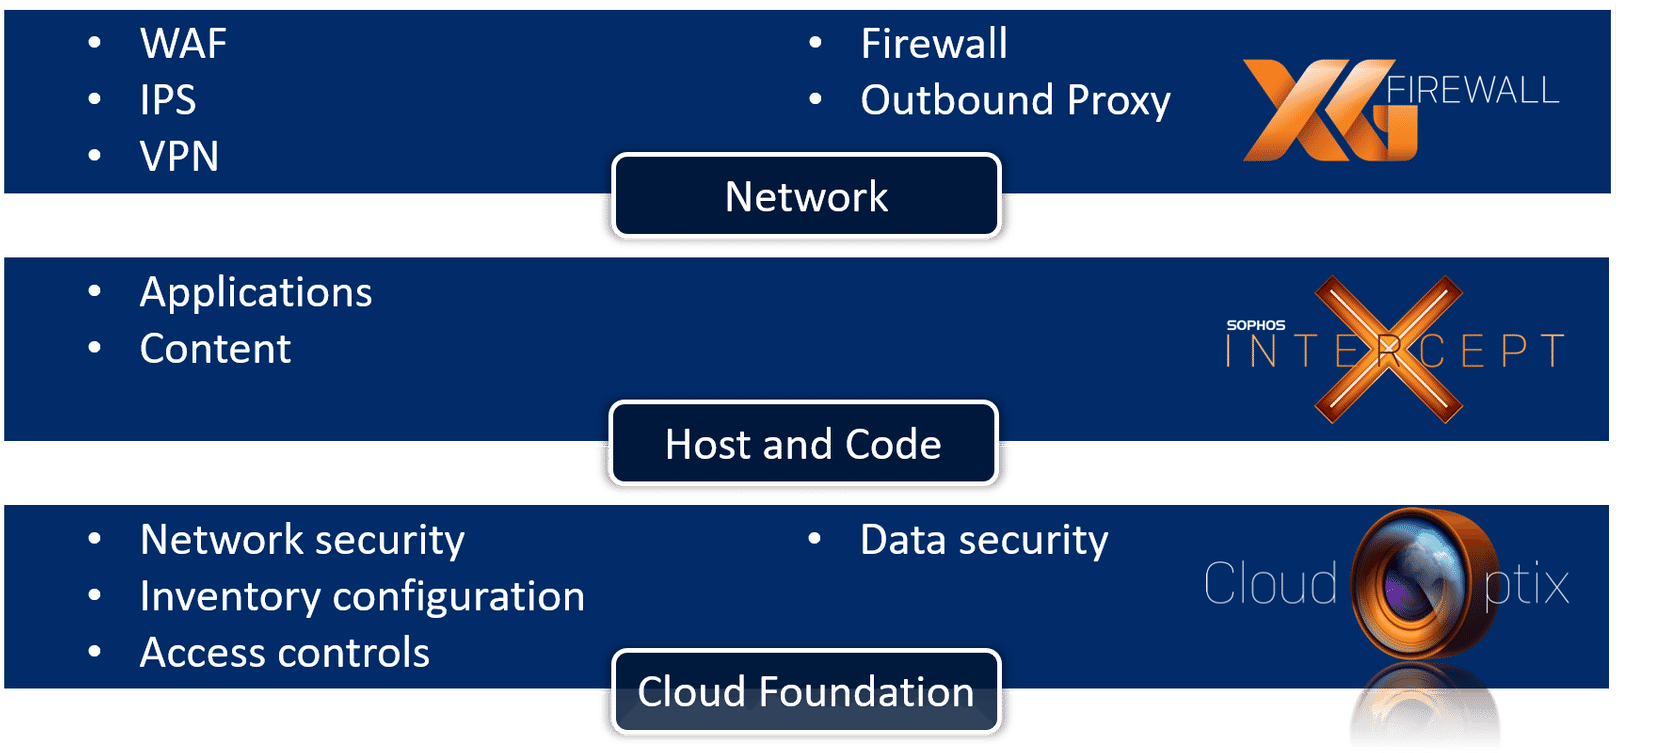 In summary, we have mapped Sophos' solutions to the protection layers required for public cloud implementation.